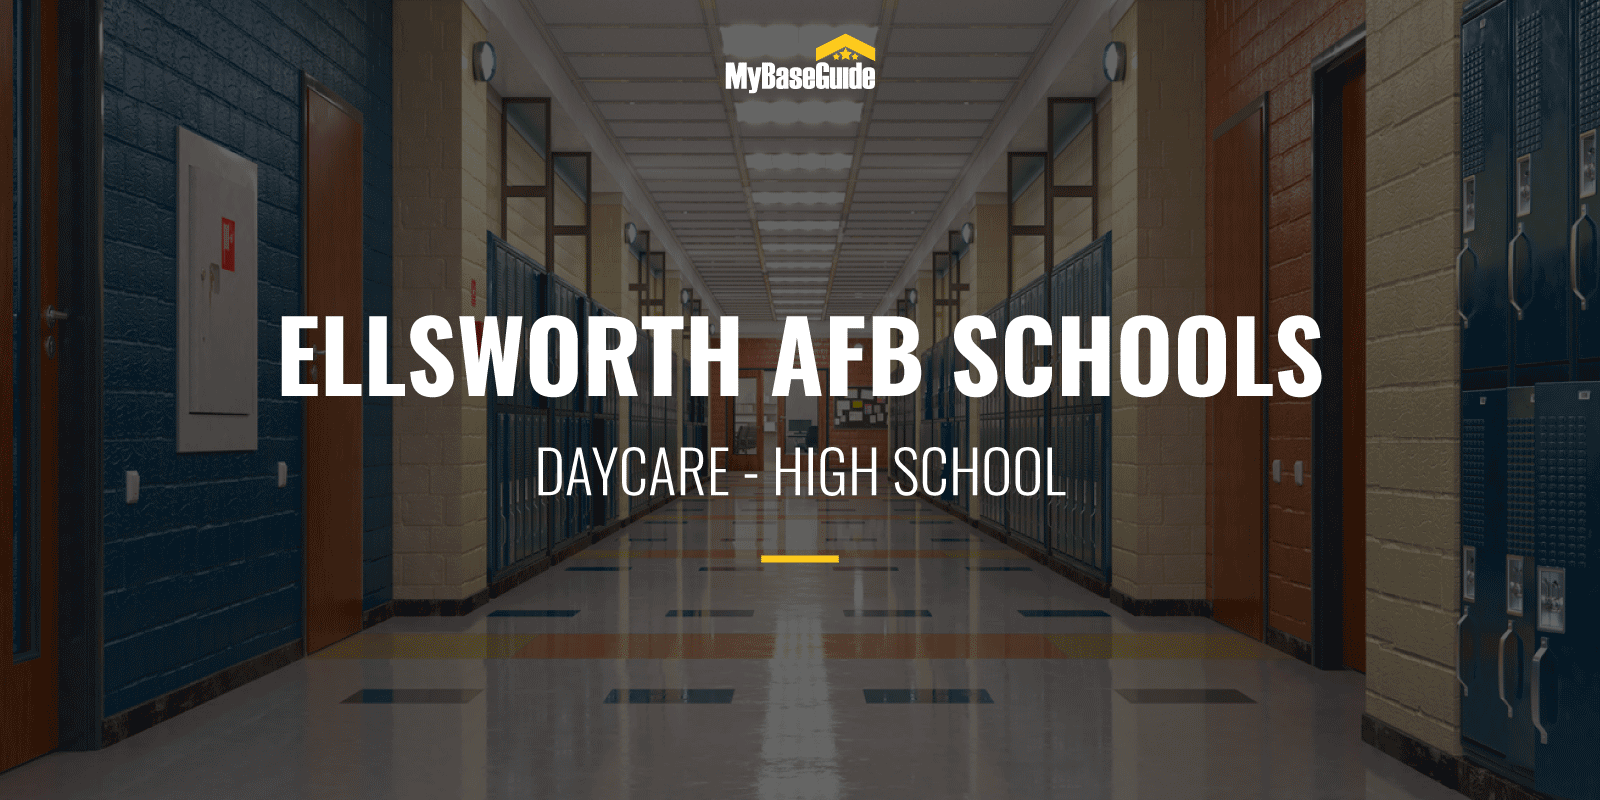 Ellsworth AFB Schools: Daycare - High School